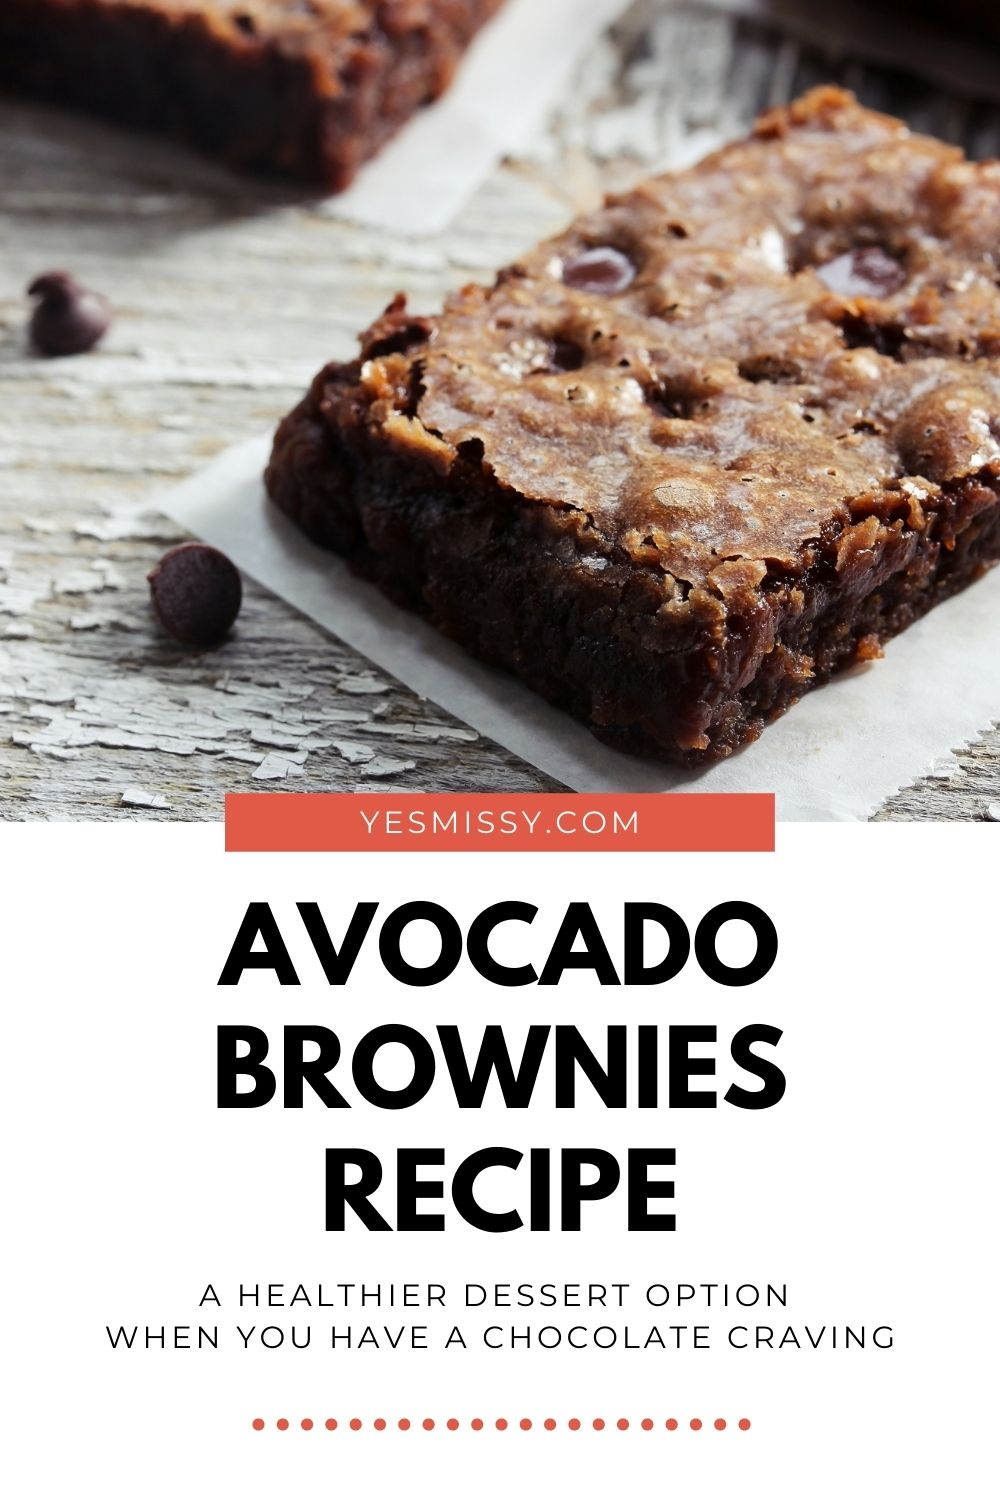 Easy & delicious, these avocado brownies are the perfect treat when you want something healthy and tasty! Get the full recipe on yesmissy.com